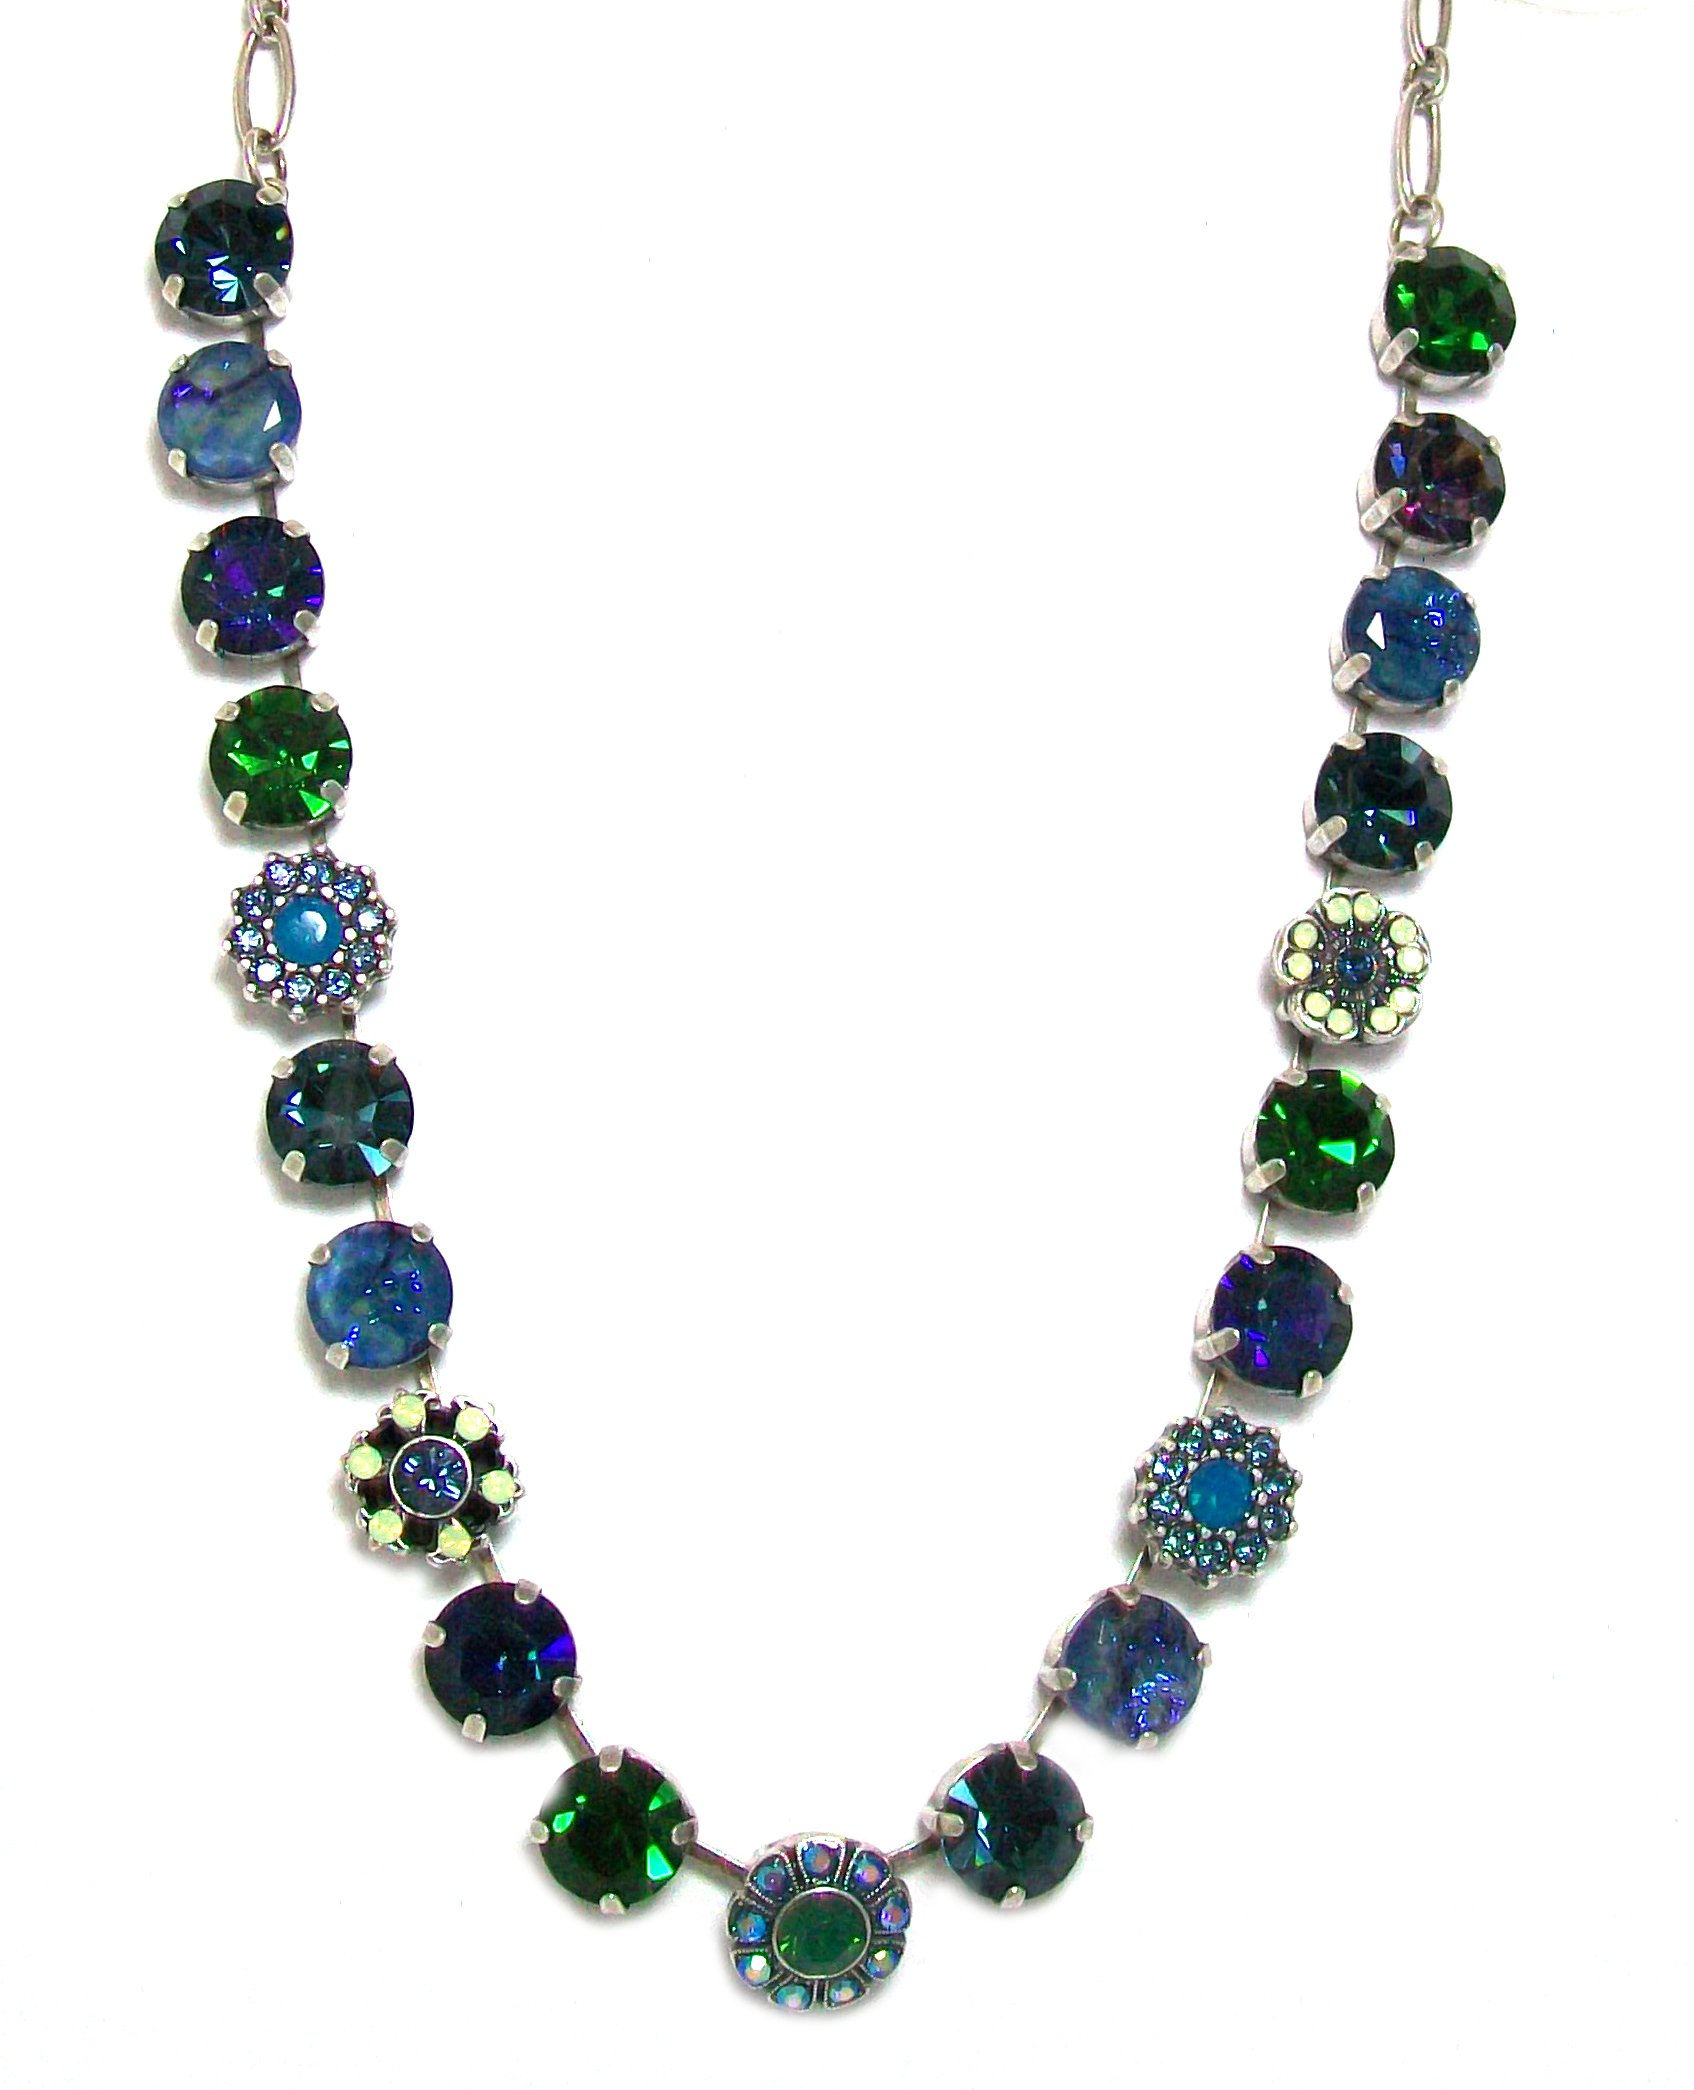 Mariana ''Mediterranean Blue'' Antique Silver Plated Choker Swarovski Crystal and Bead Necklace, 16+2'' Extender